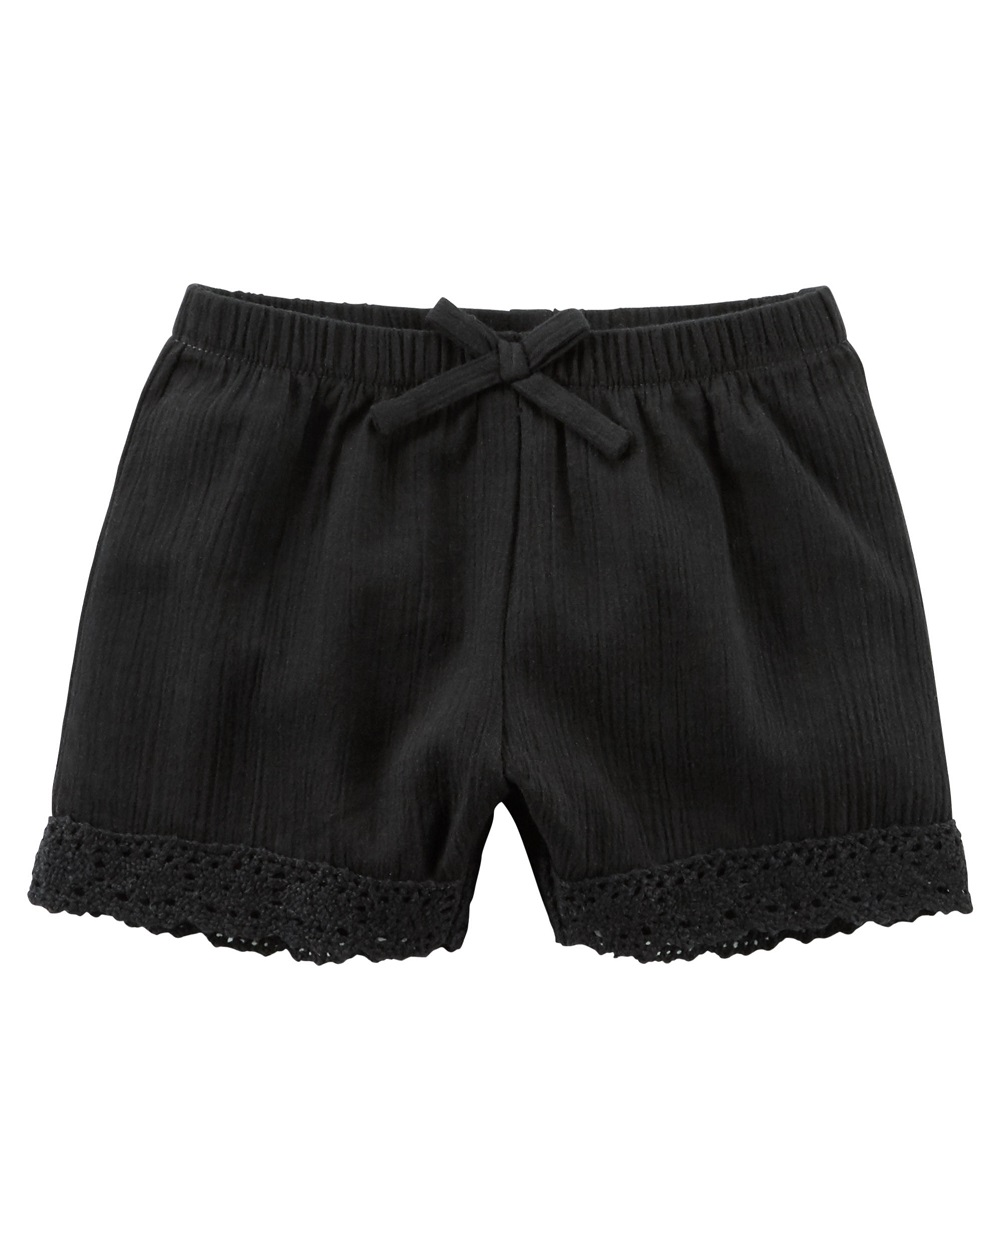 Carter's Baby Girls' Lace-Trim Crinkle Shorts, Black, 18 Months